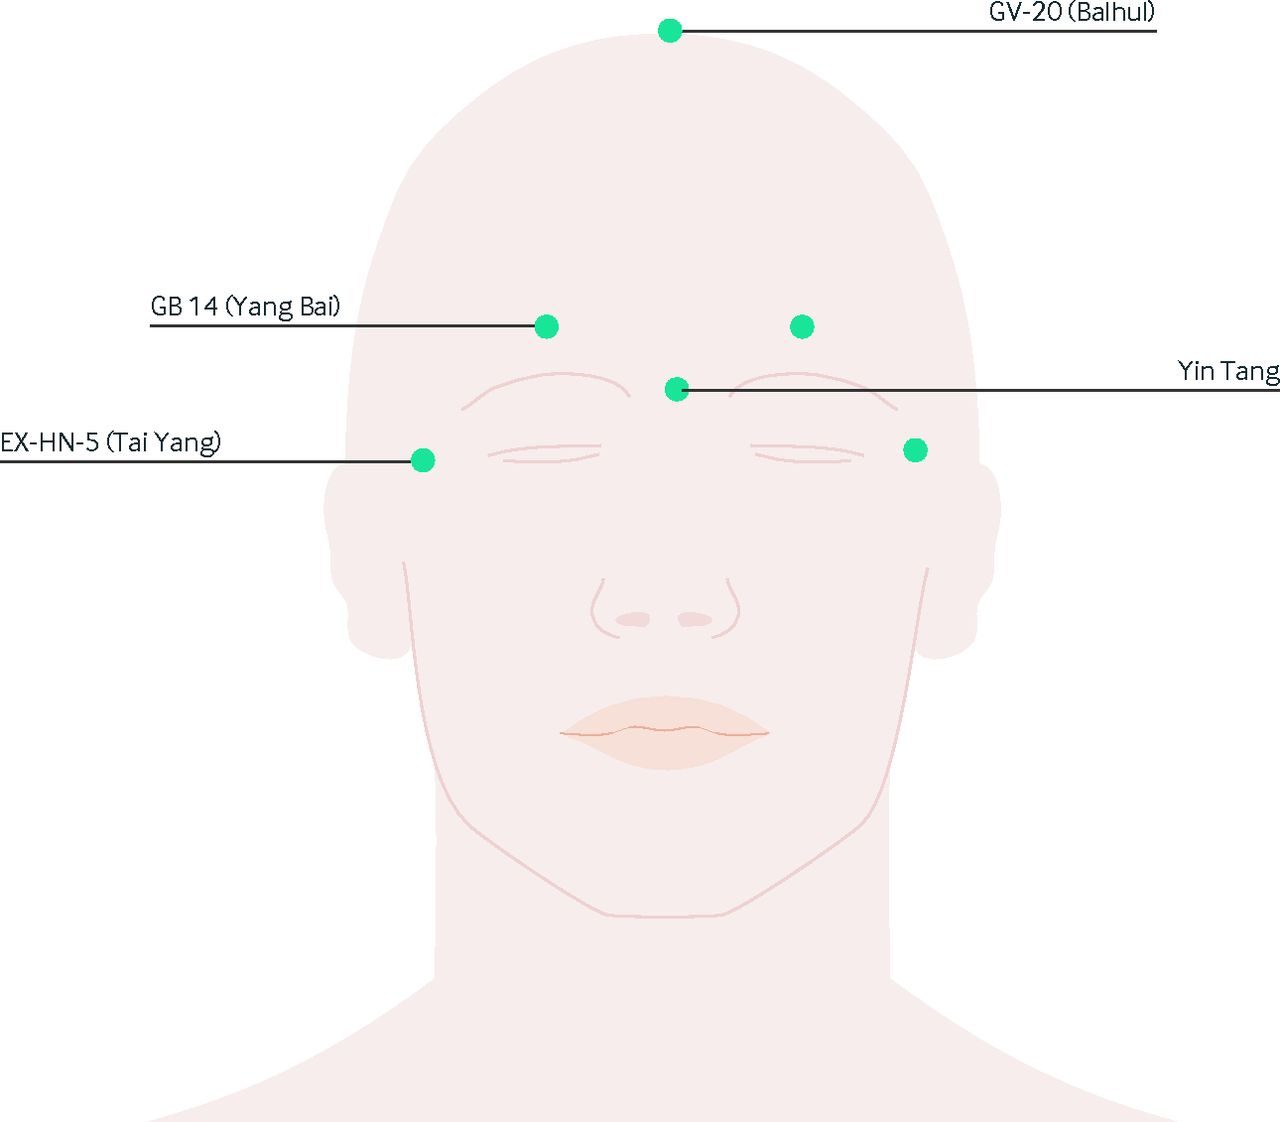 hight resolution of fig 1 common acupuncture points on the face and head where needles are inserted in combinations to treat various types of headaches